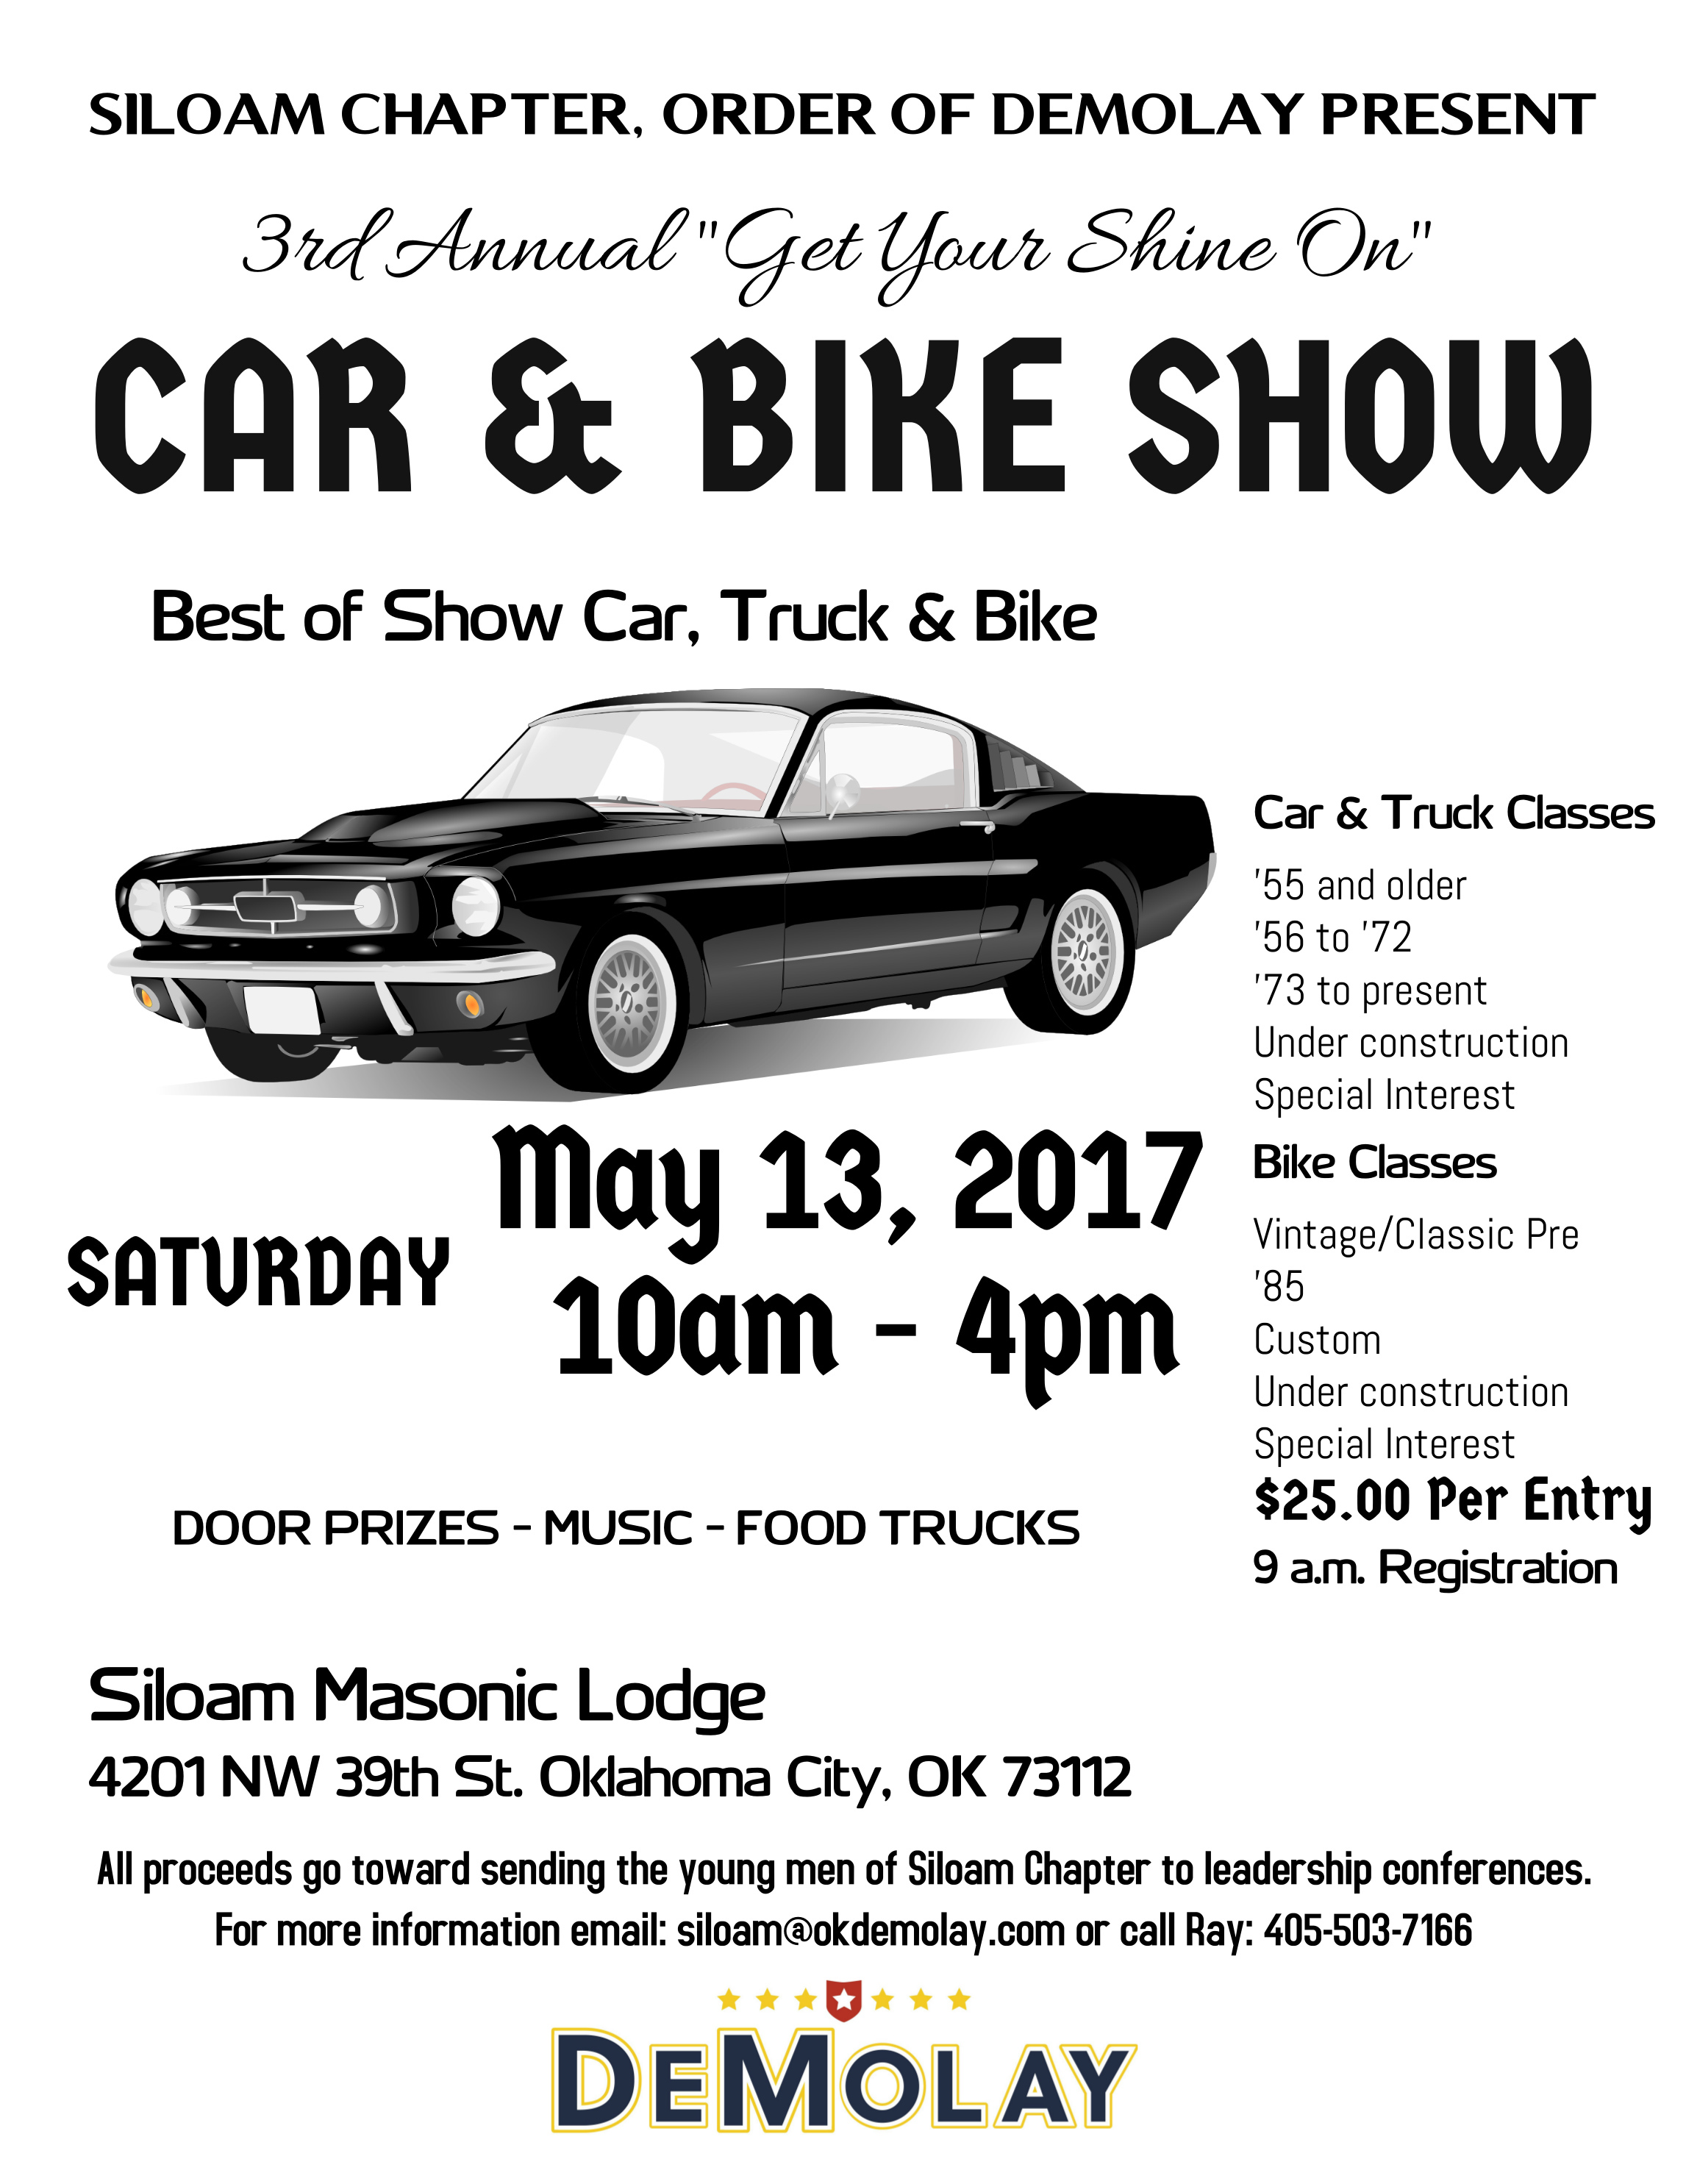 oklahoma area car shows and events listing we list oklahoma area 13th oklahoma city ok 3rd annual get your shine on car bike show 10am to 4 pm at siloam masonic lodge 4201 nw 39th st